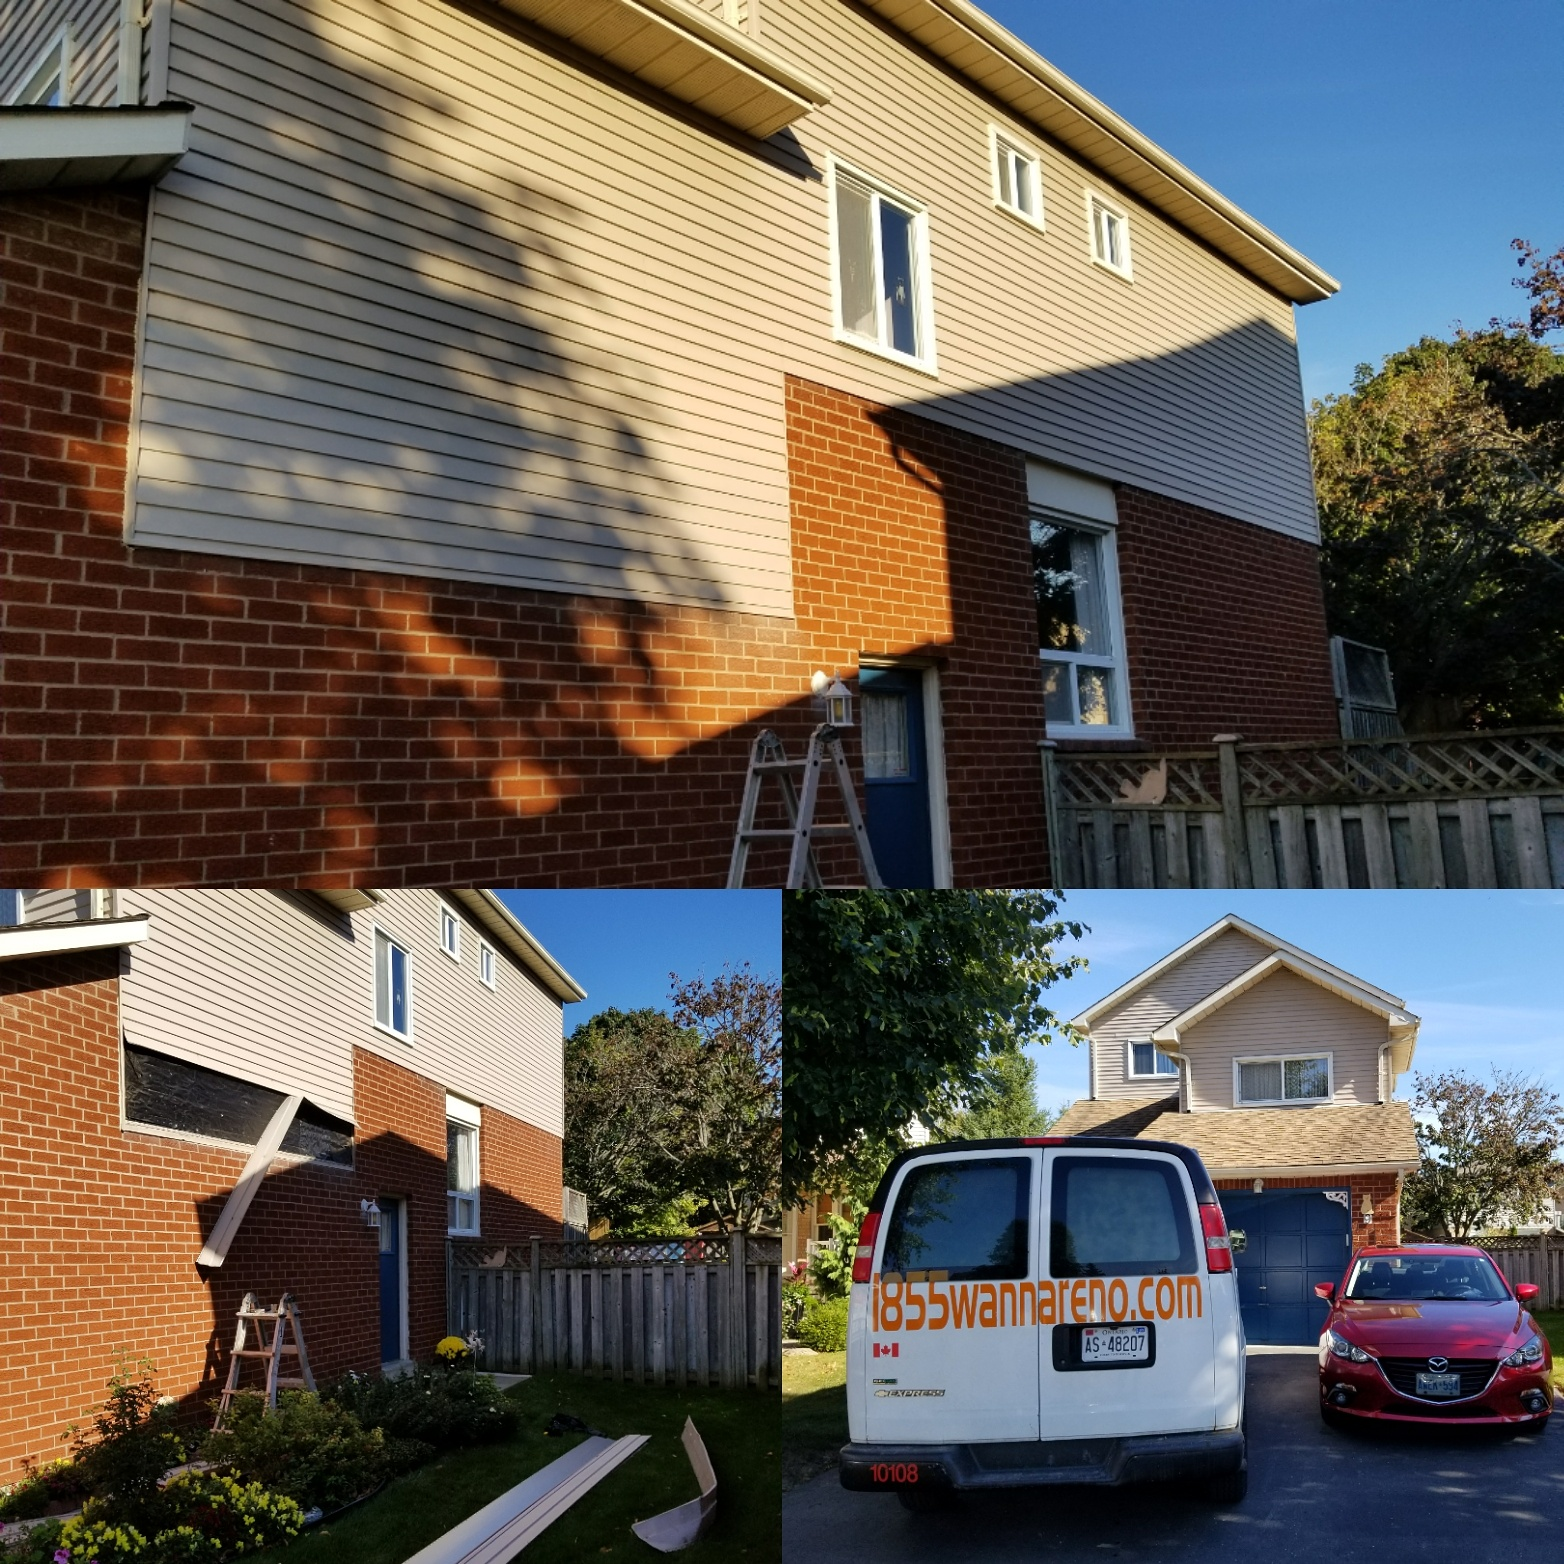 Siding repair in Whitby.Durham